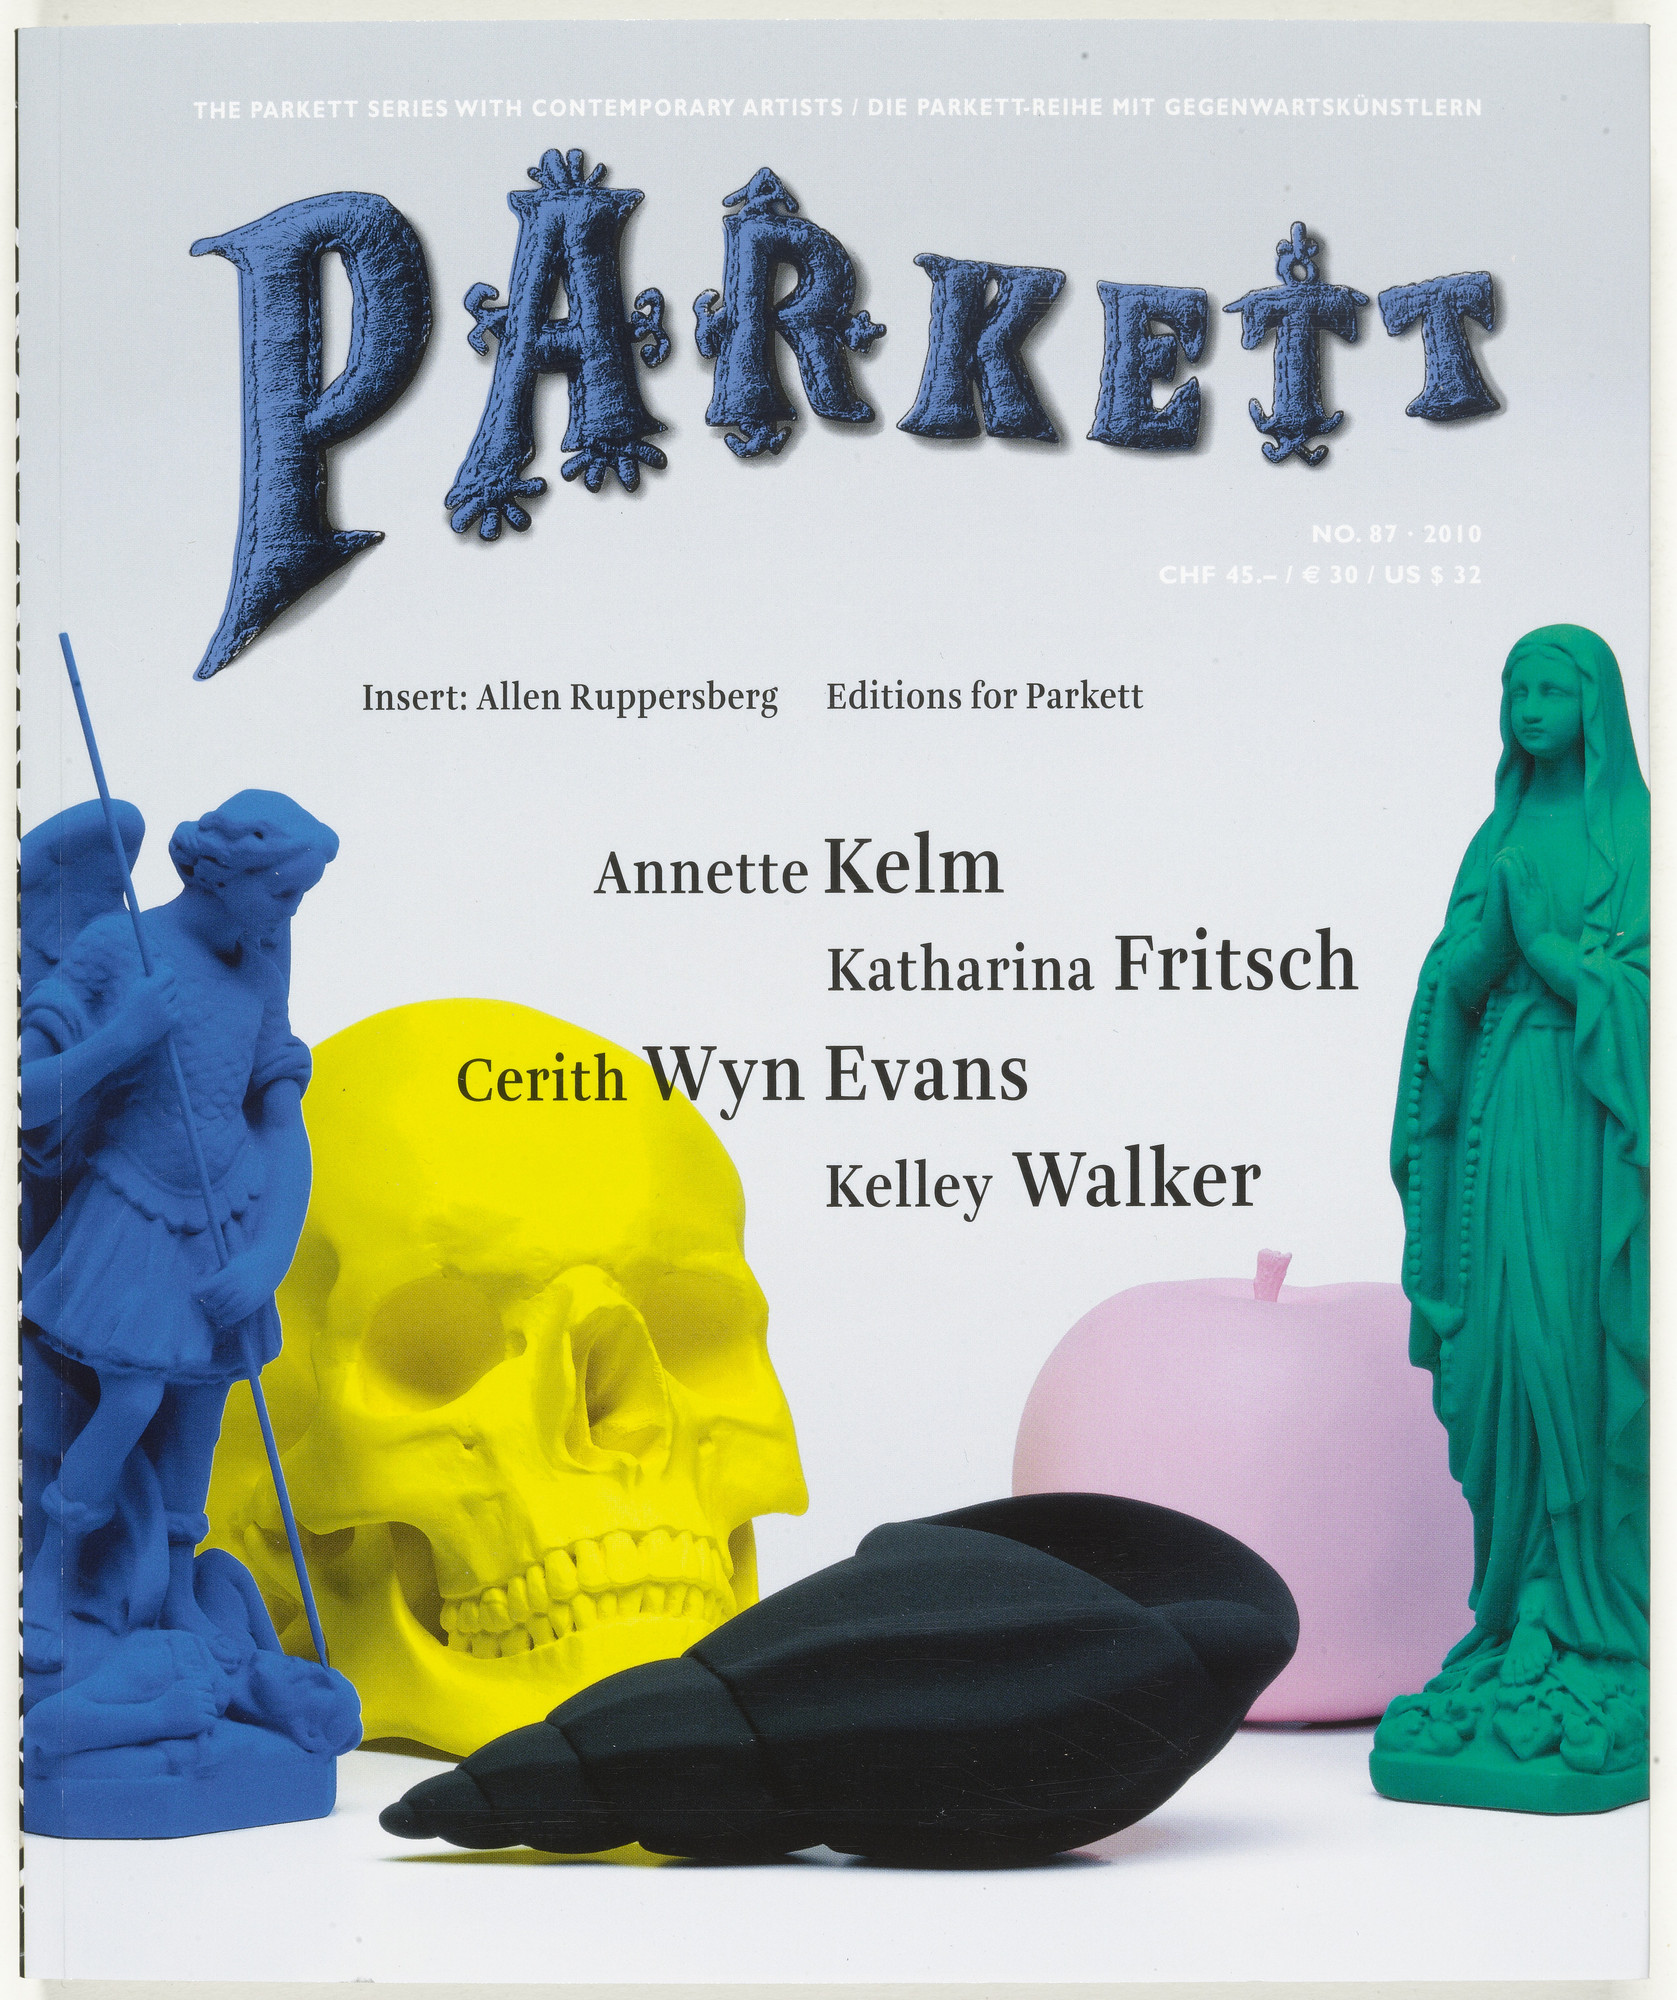 Various Artists, Katharina Fritsch, Annette Kelm, Josh Smith, Kelley Walker, Cerith Wyn Evans. Parkett no. 87. 2010